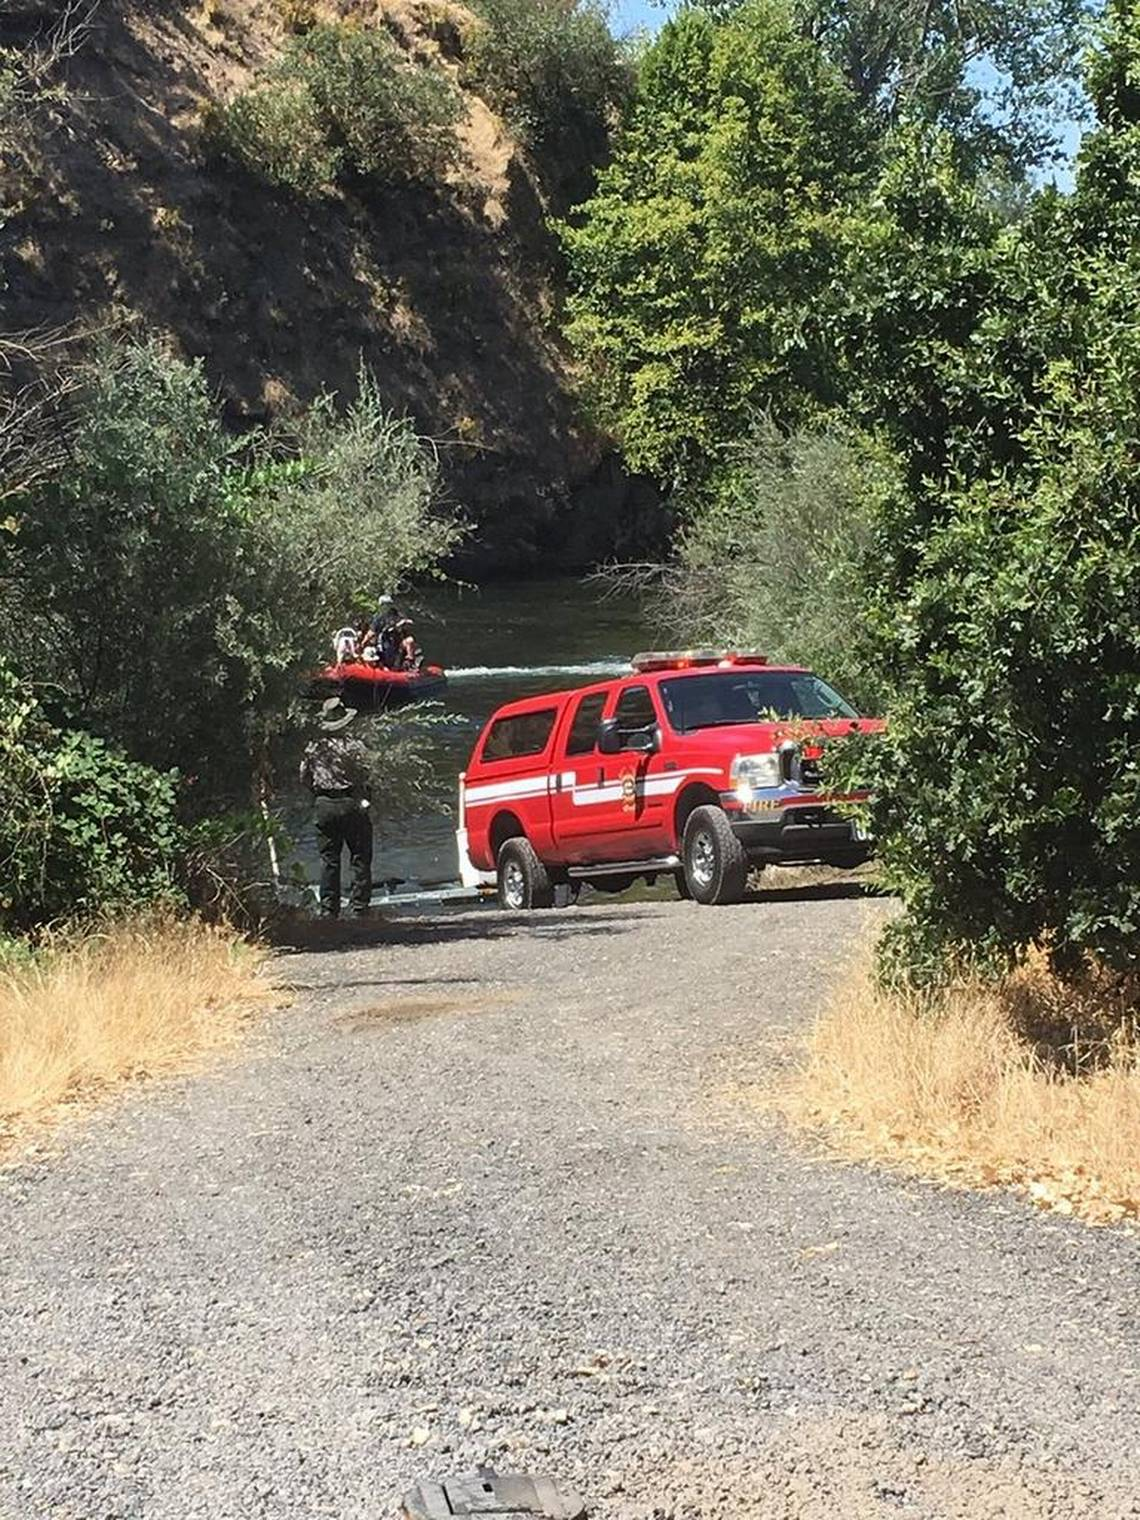 image of rescue team vehicle